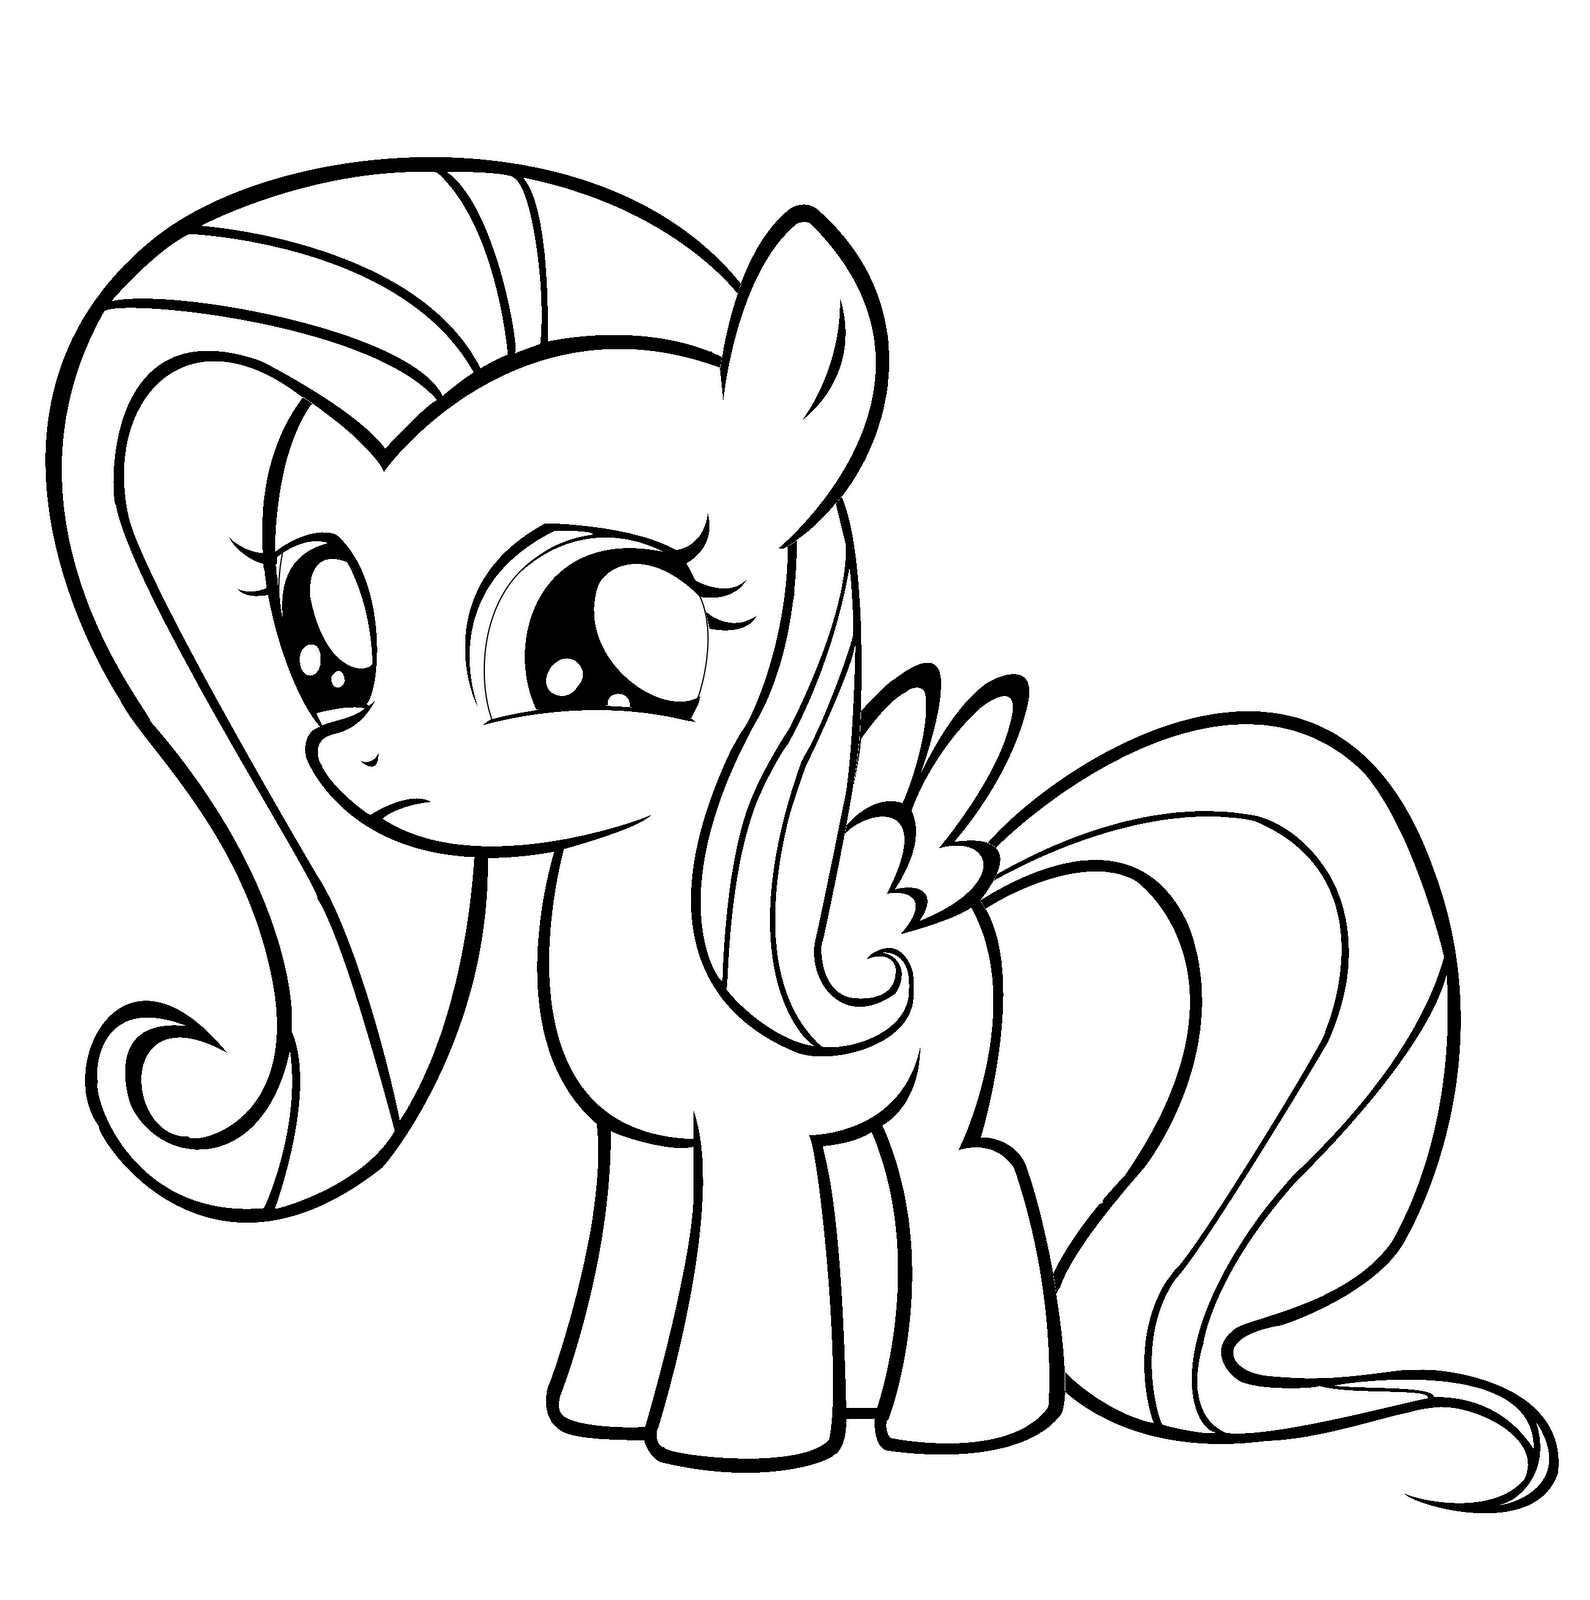 1590x1600 My Little Pony Fluttershy Coloring Pages